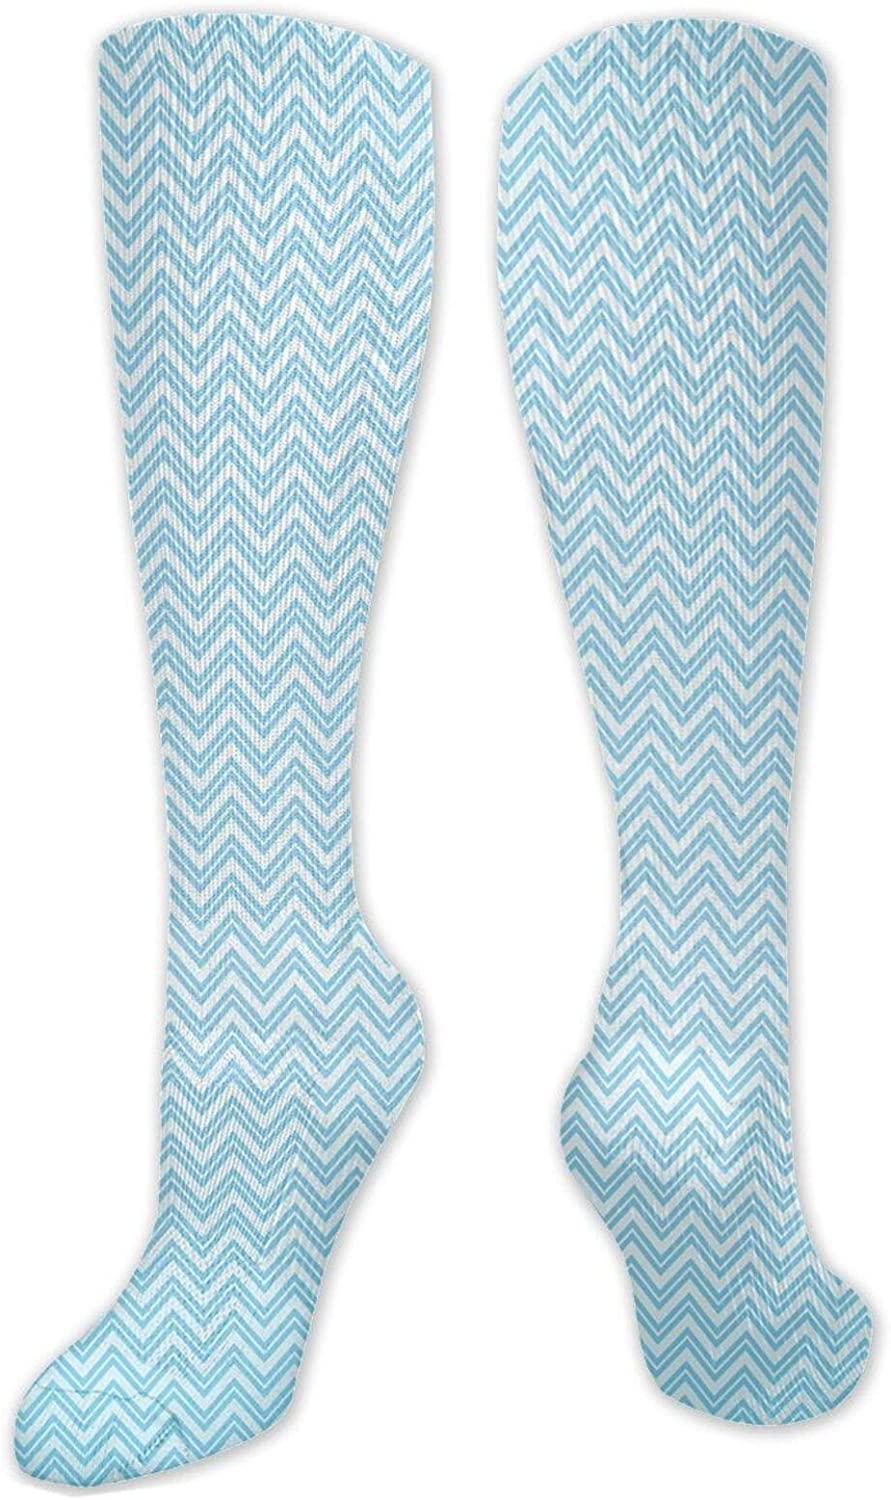 Long Cotton Thigh High Socks, Ocean Layers Blue Colored Zig